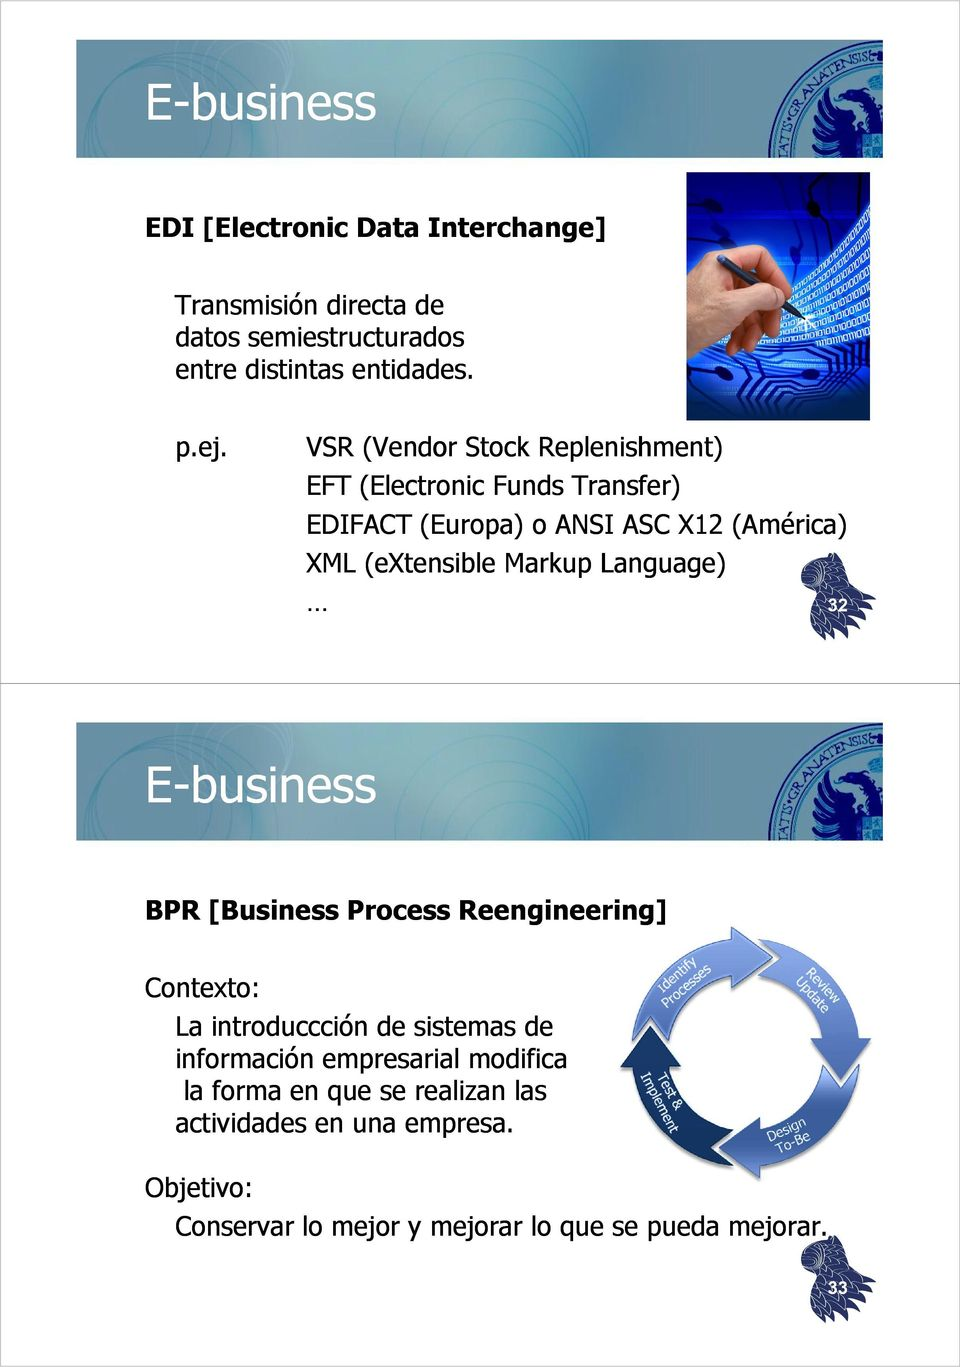 Language) 32 E-business BPR [Business Process Reengineering] Contexto: La introduccción de sistemas de información empresarial